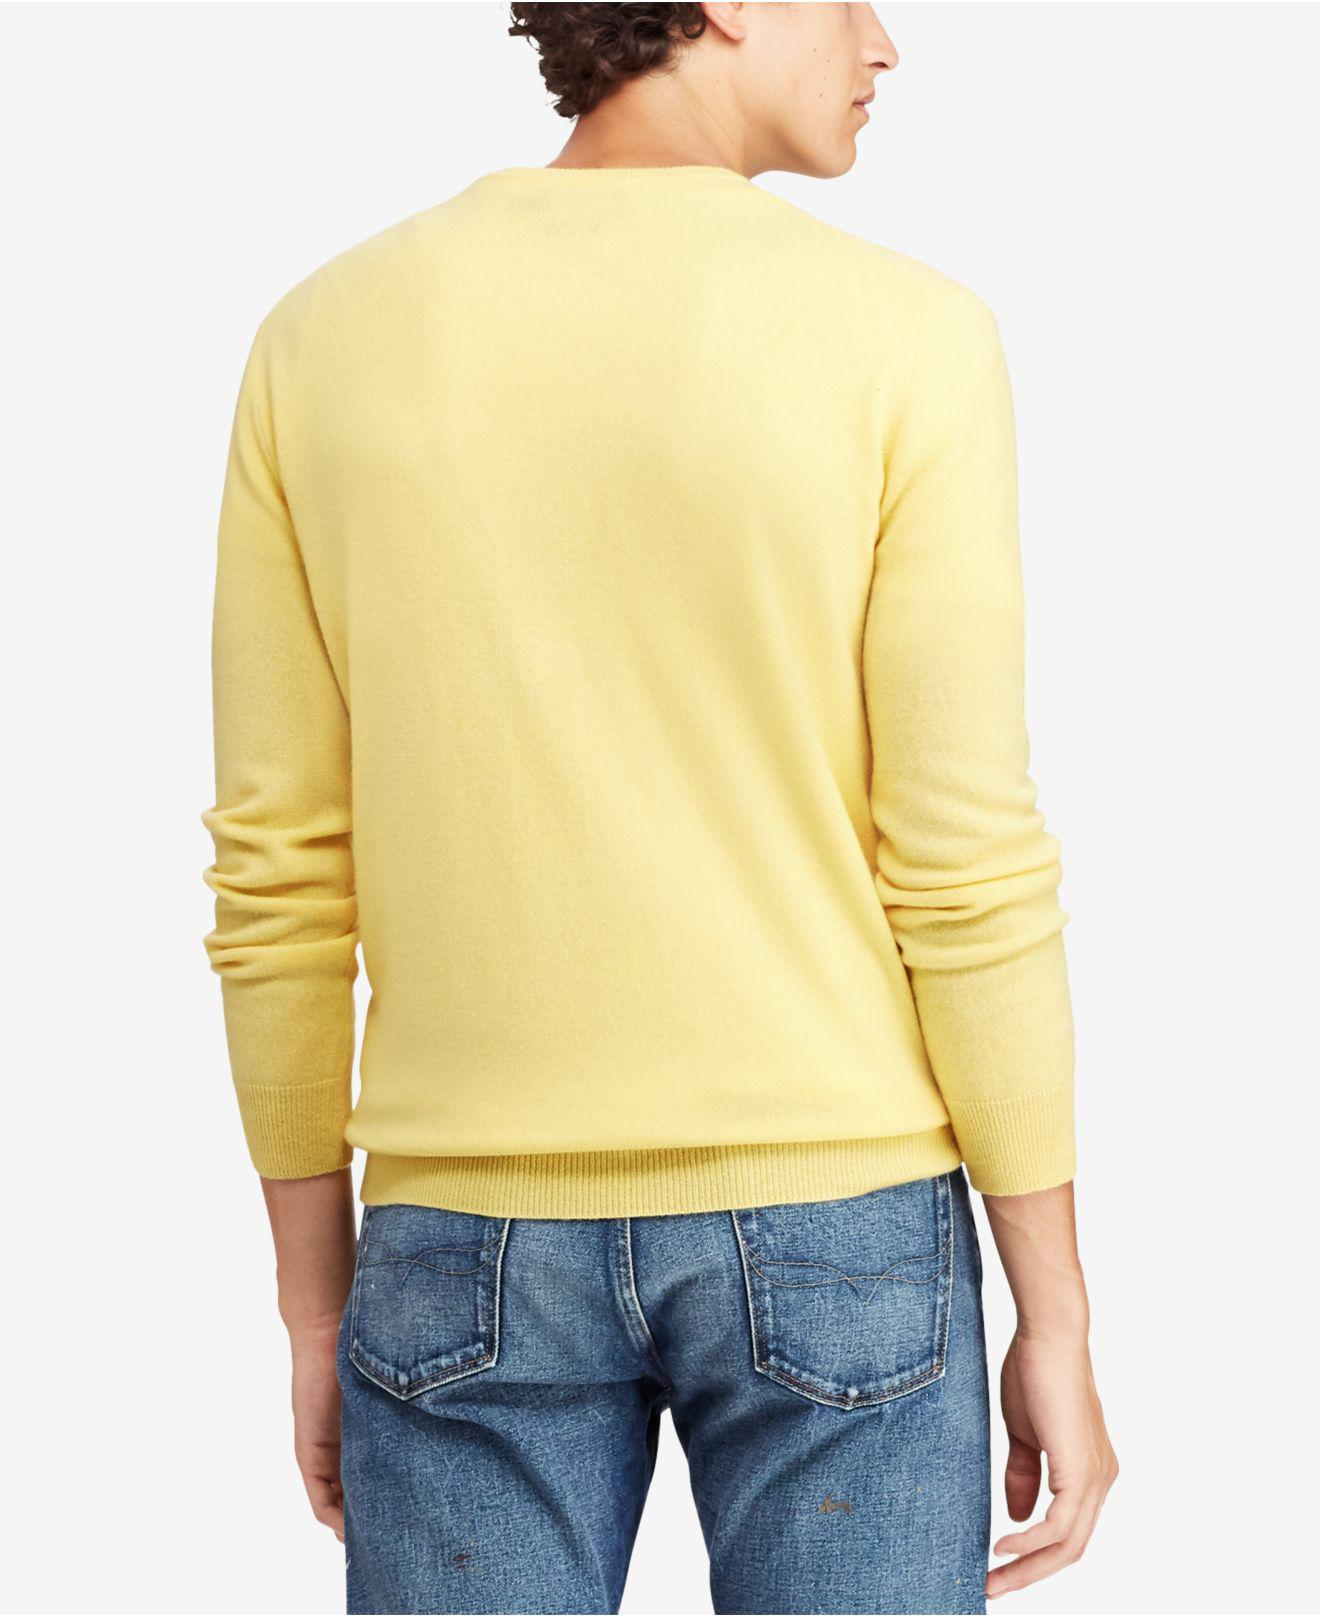 f3b3935d ... best price lyst polo ralph lauren cashmere crew neck sweater in yellow  for men 32988 27d86